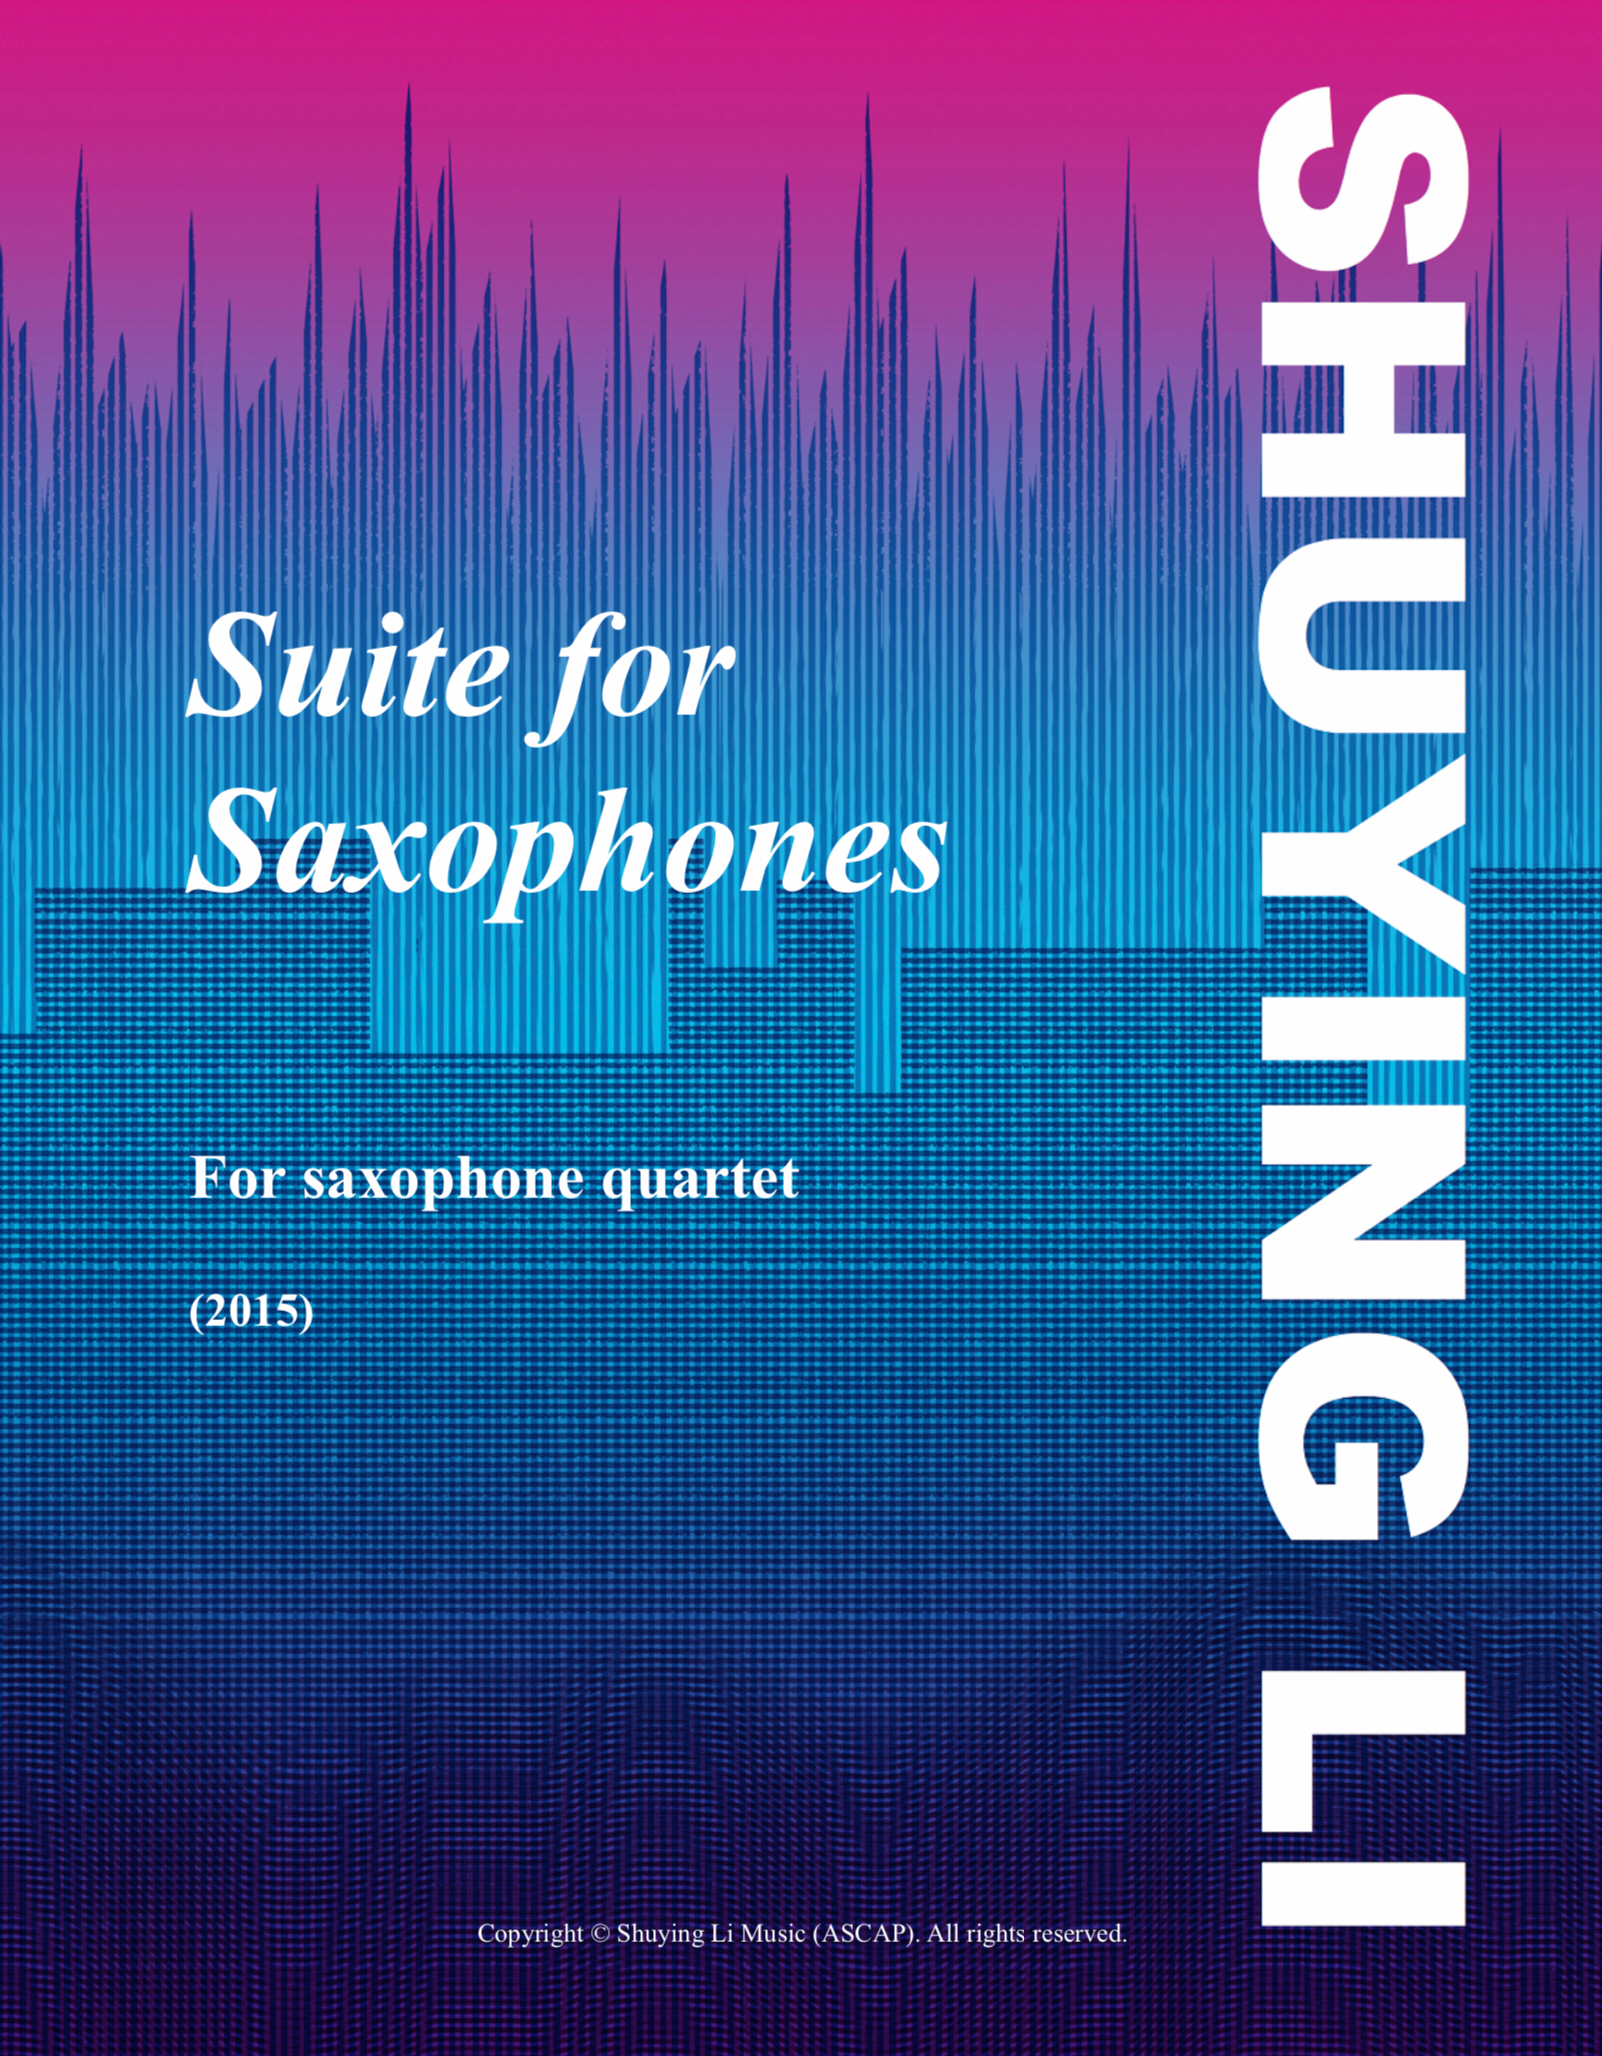 Suite For Saxophones by Shuying Li